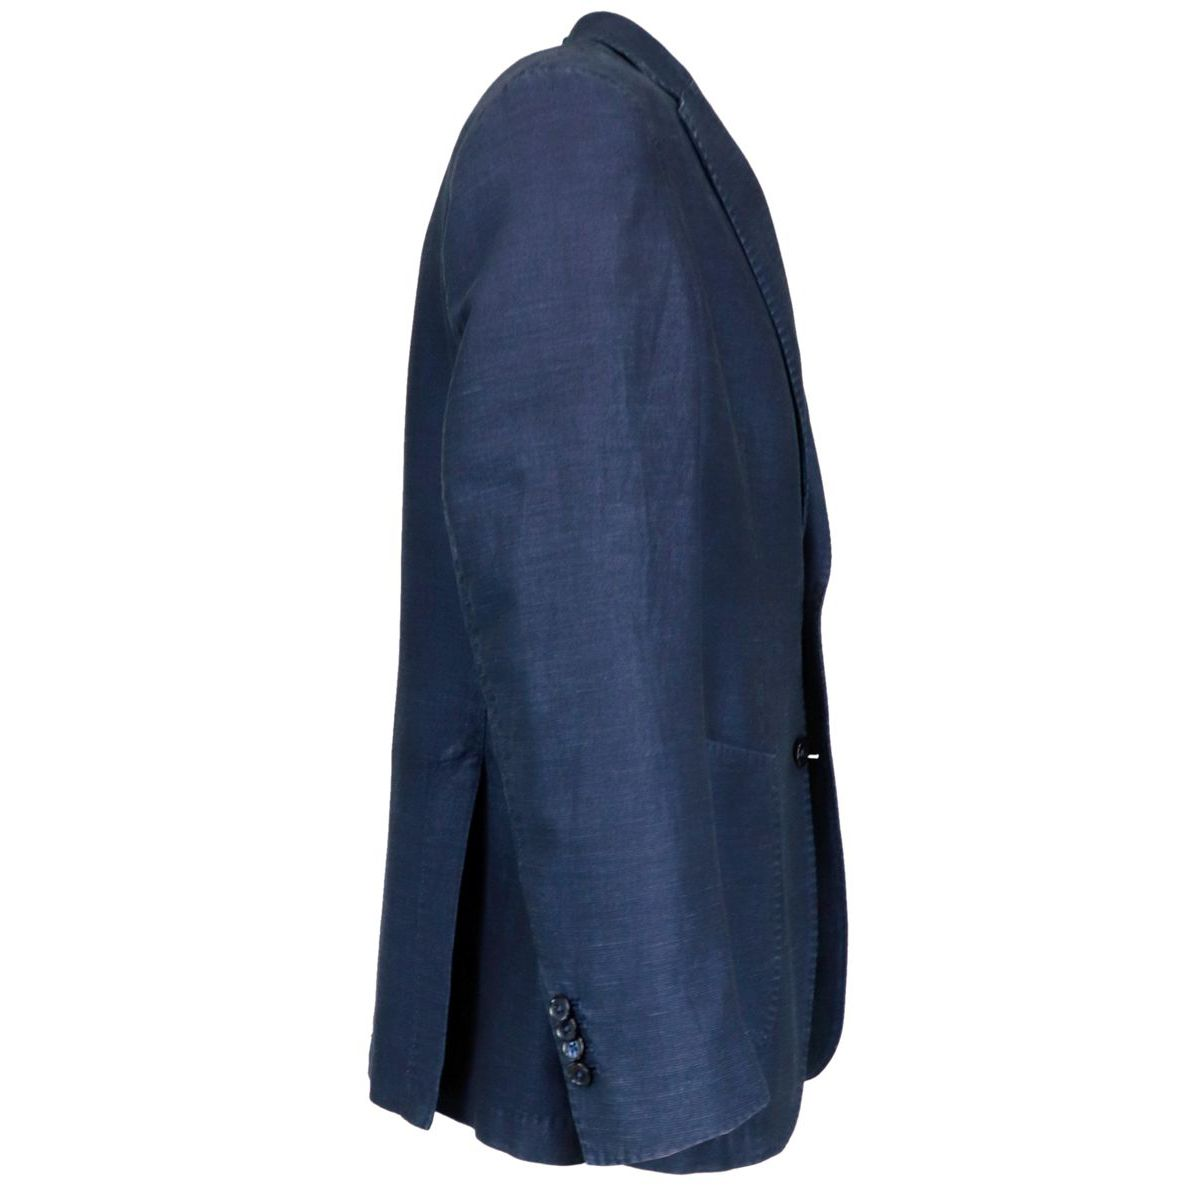 Two-button jacket in linen and cotton Blue L.B.M. 1911